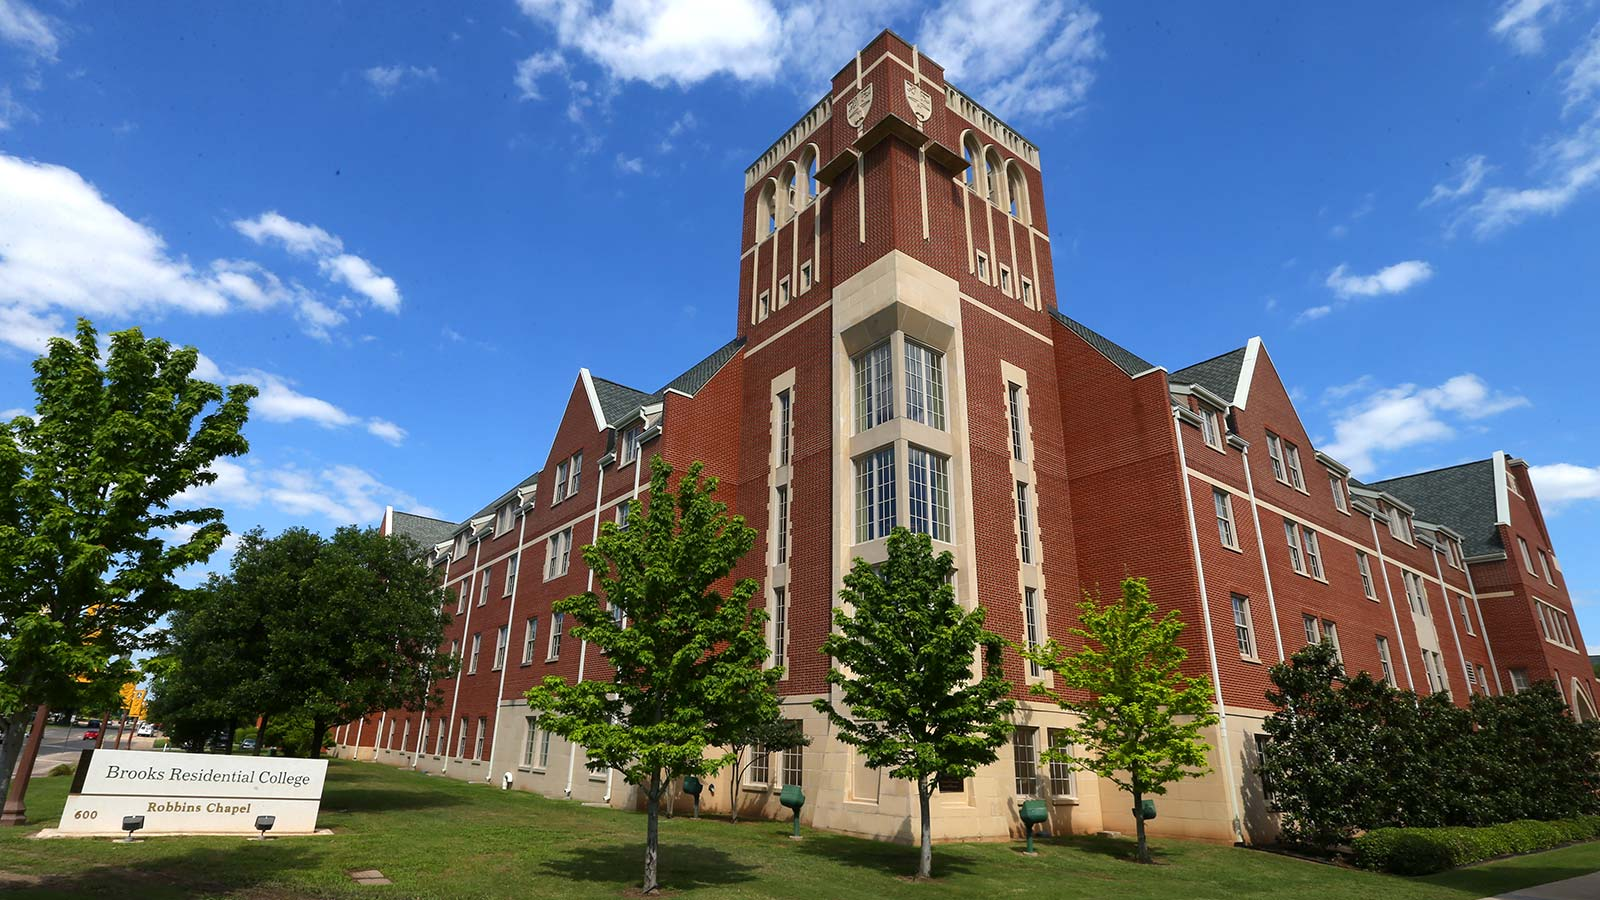 Brooks College is a unique residential college at Baylor University that draws on lasting traditions, and orienting students toward meaningful relationships within a vital intellectual community.